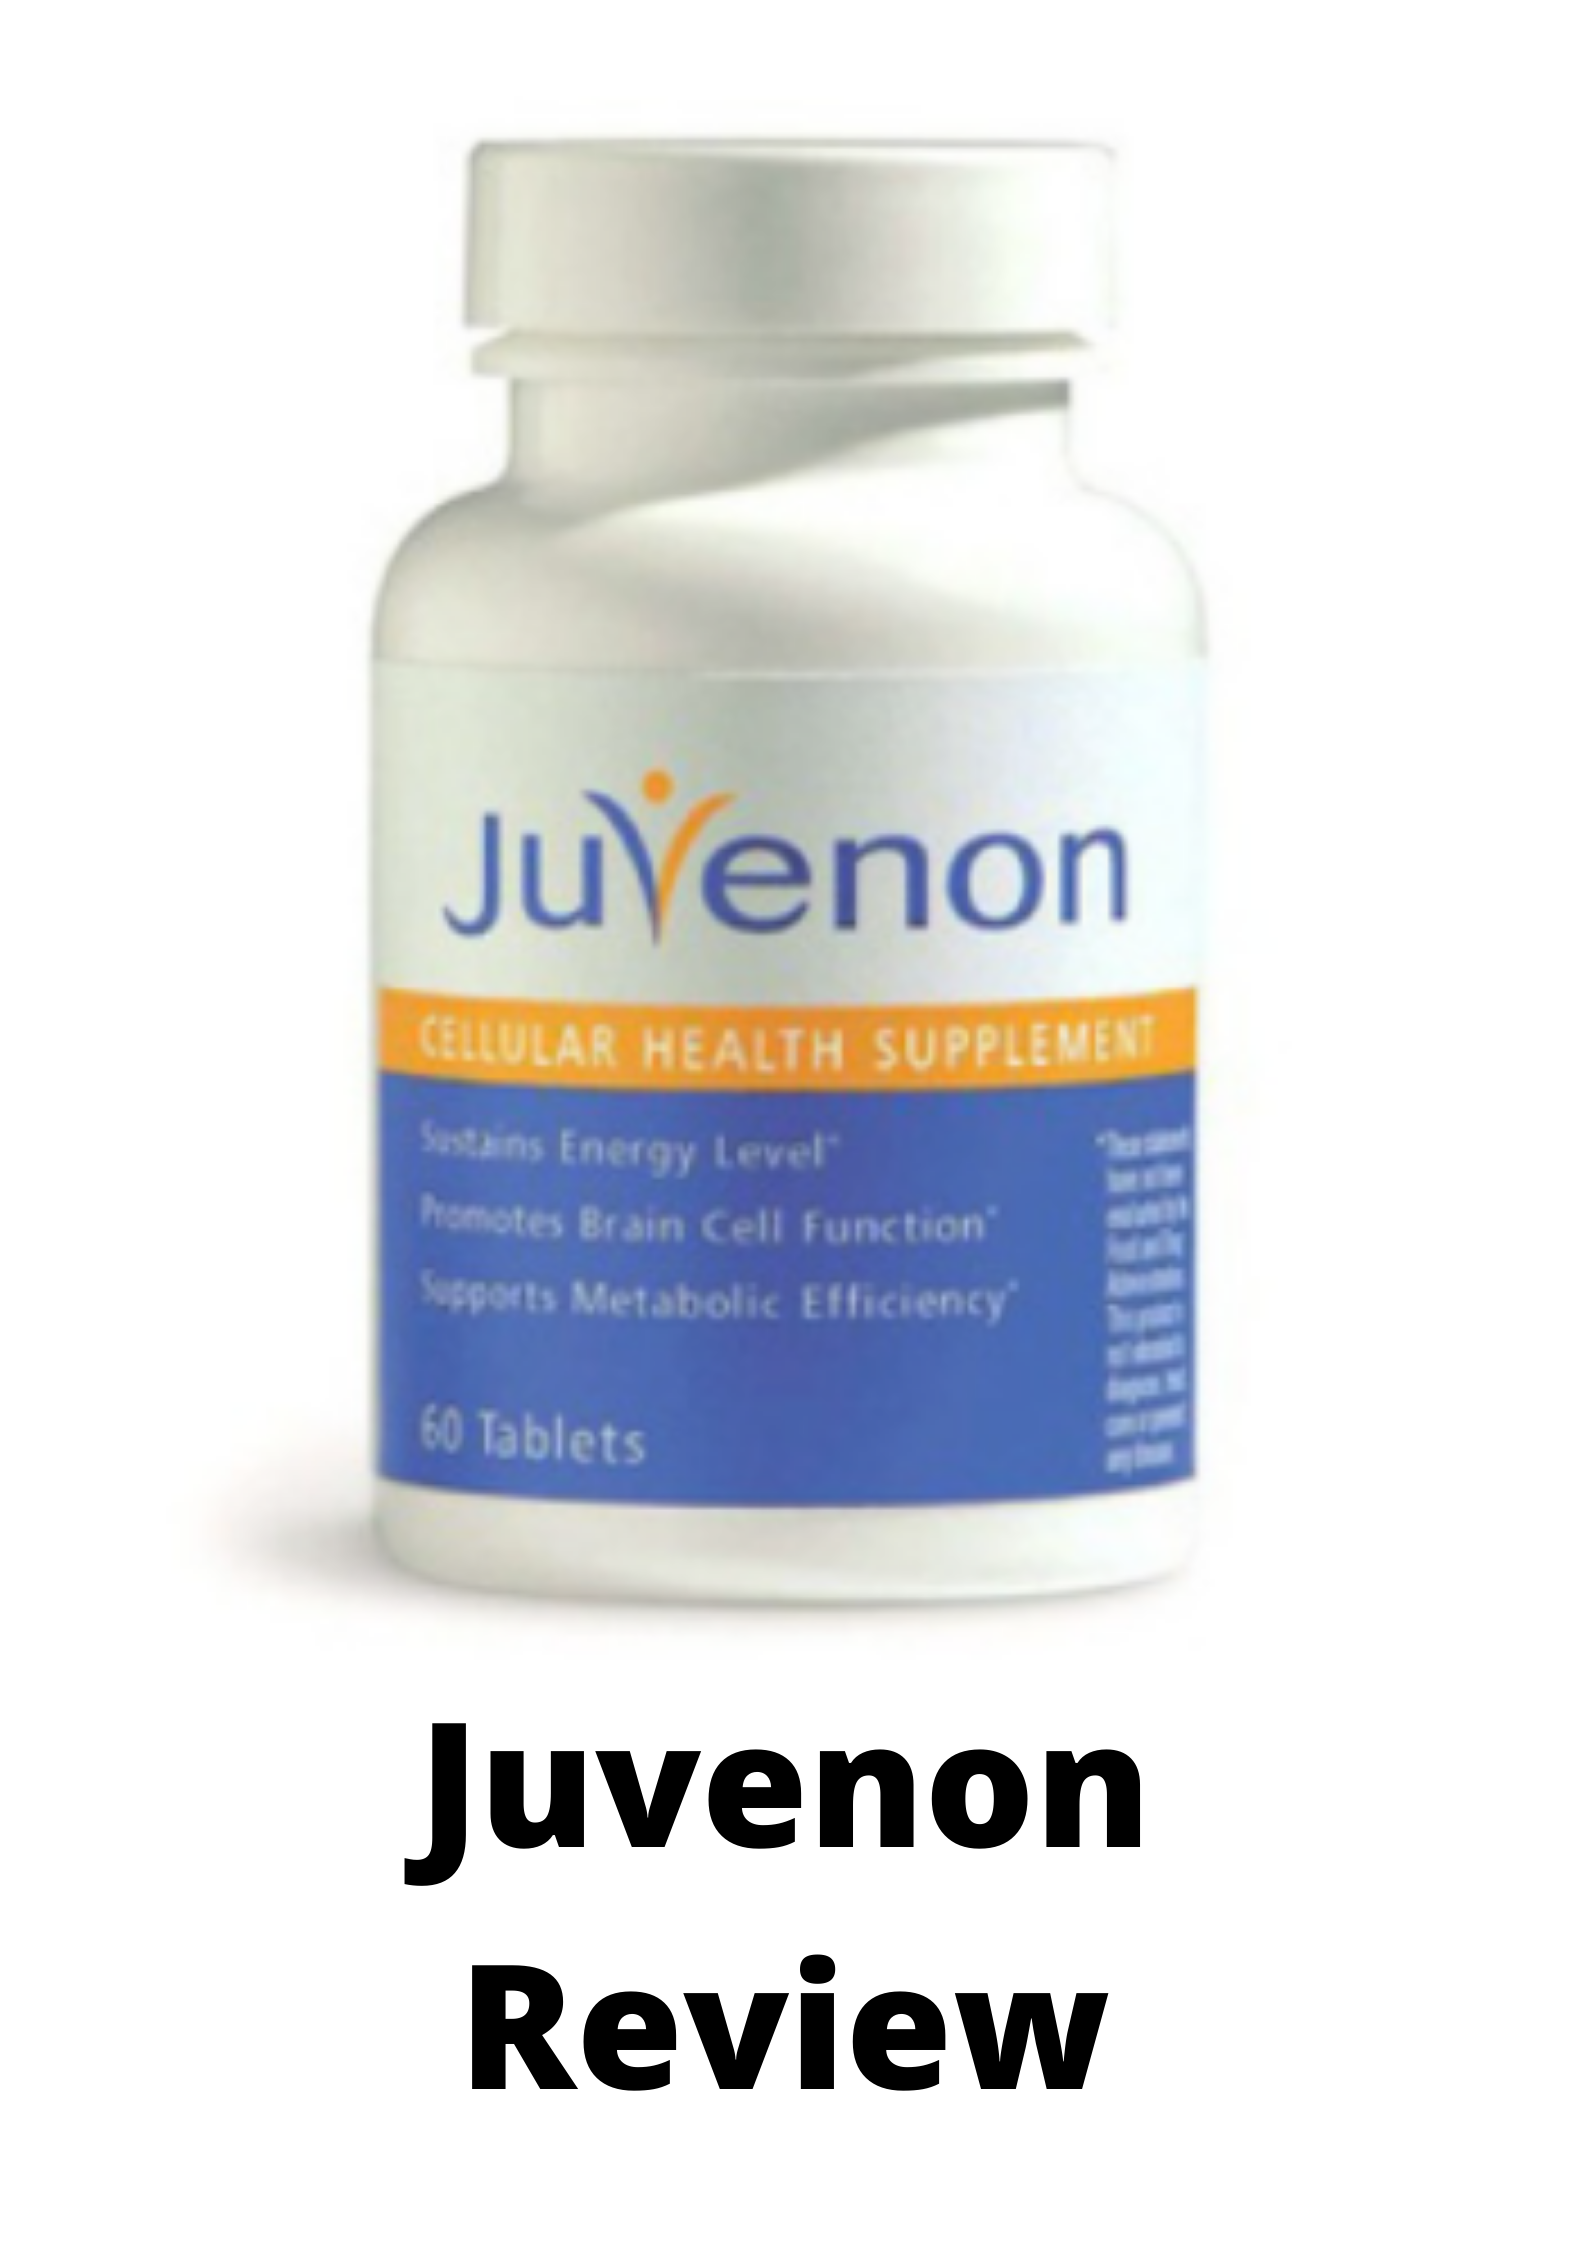 Juvenon Reviews-Is this supplement a scam?